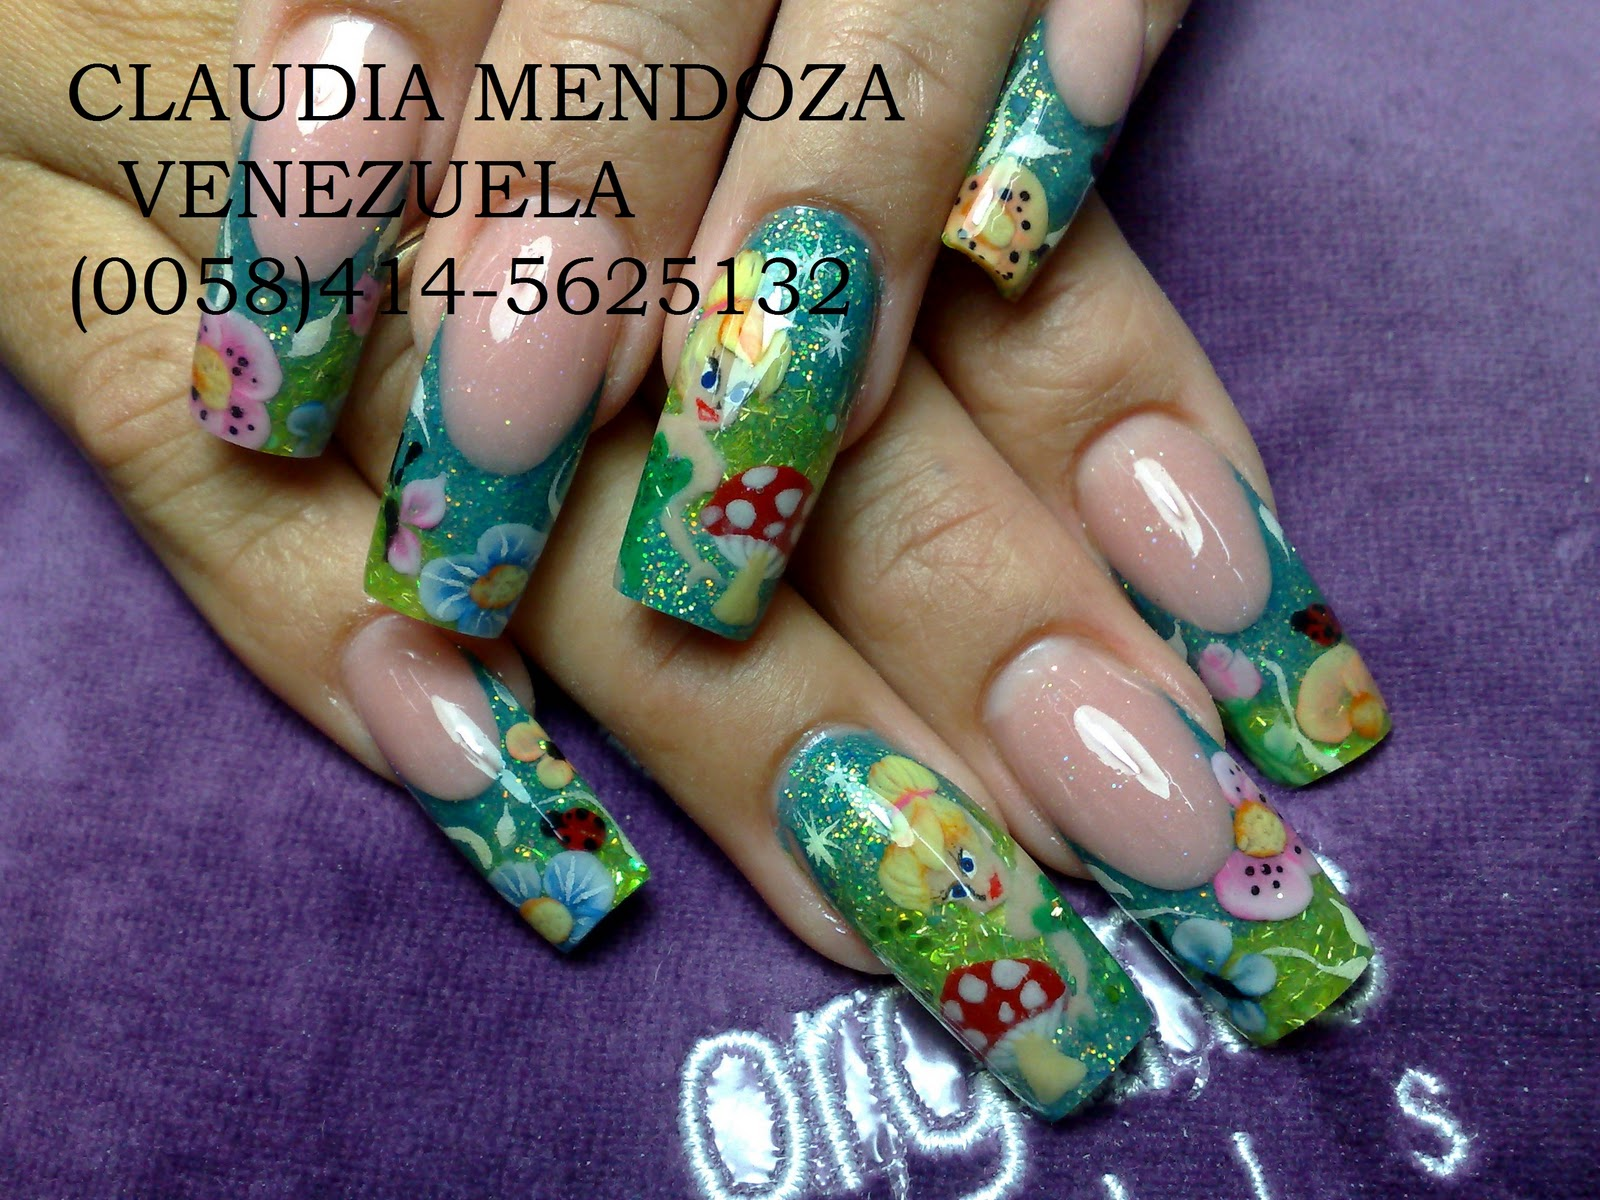 DECO NAILS, C.A: GALERIA CLAUDIA MENDOZA